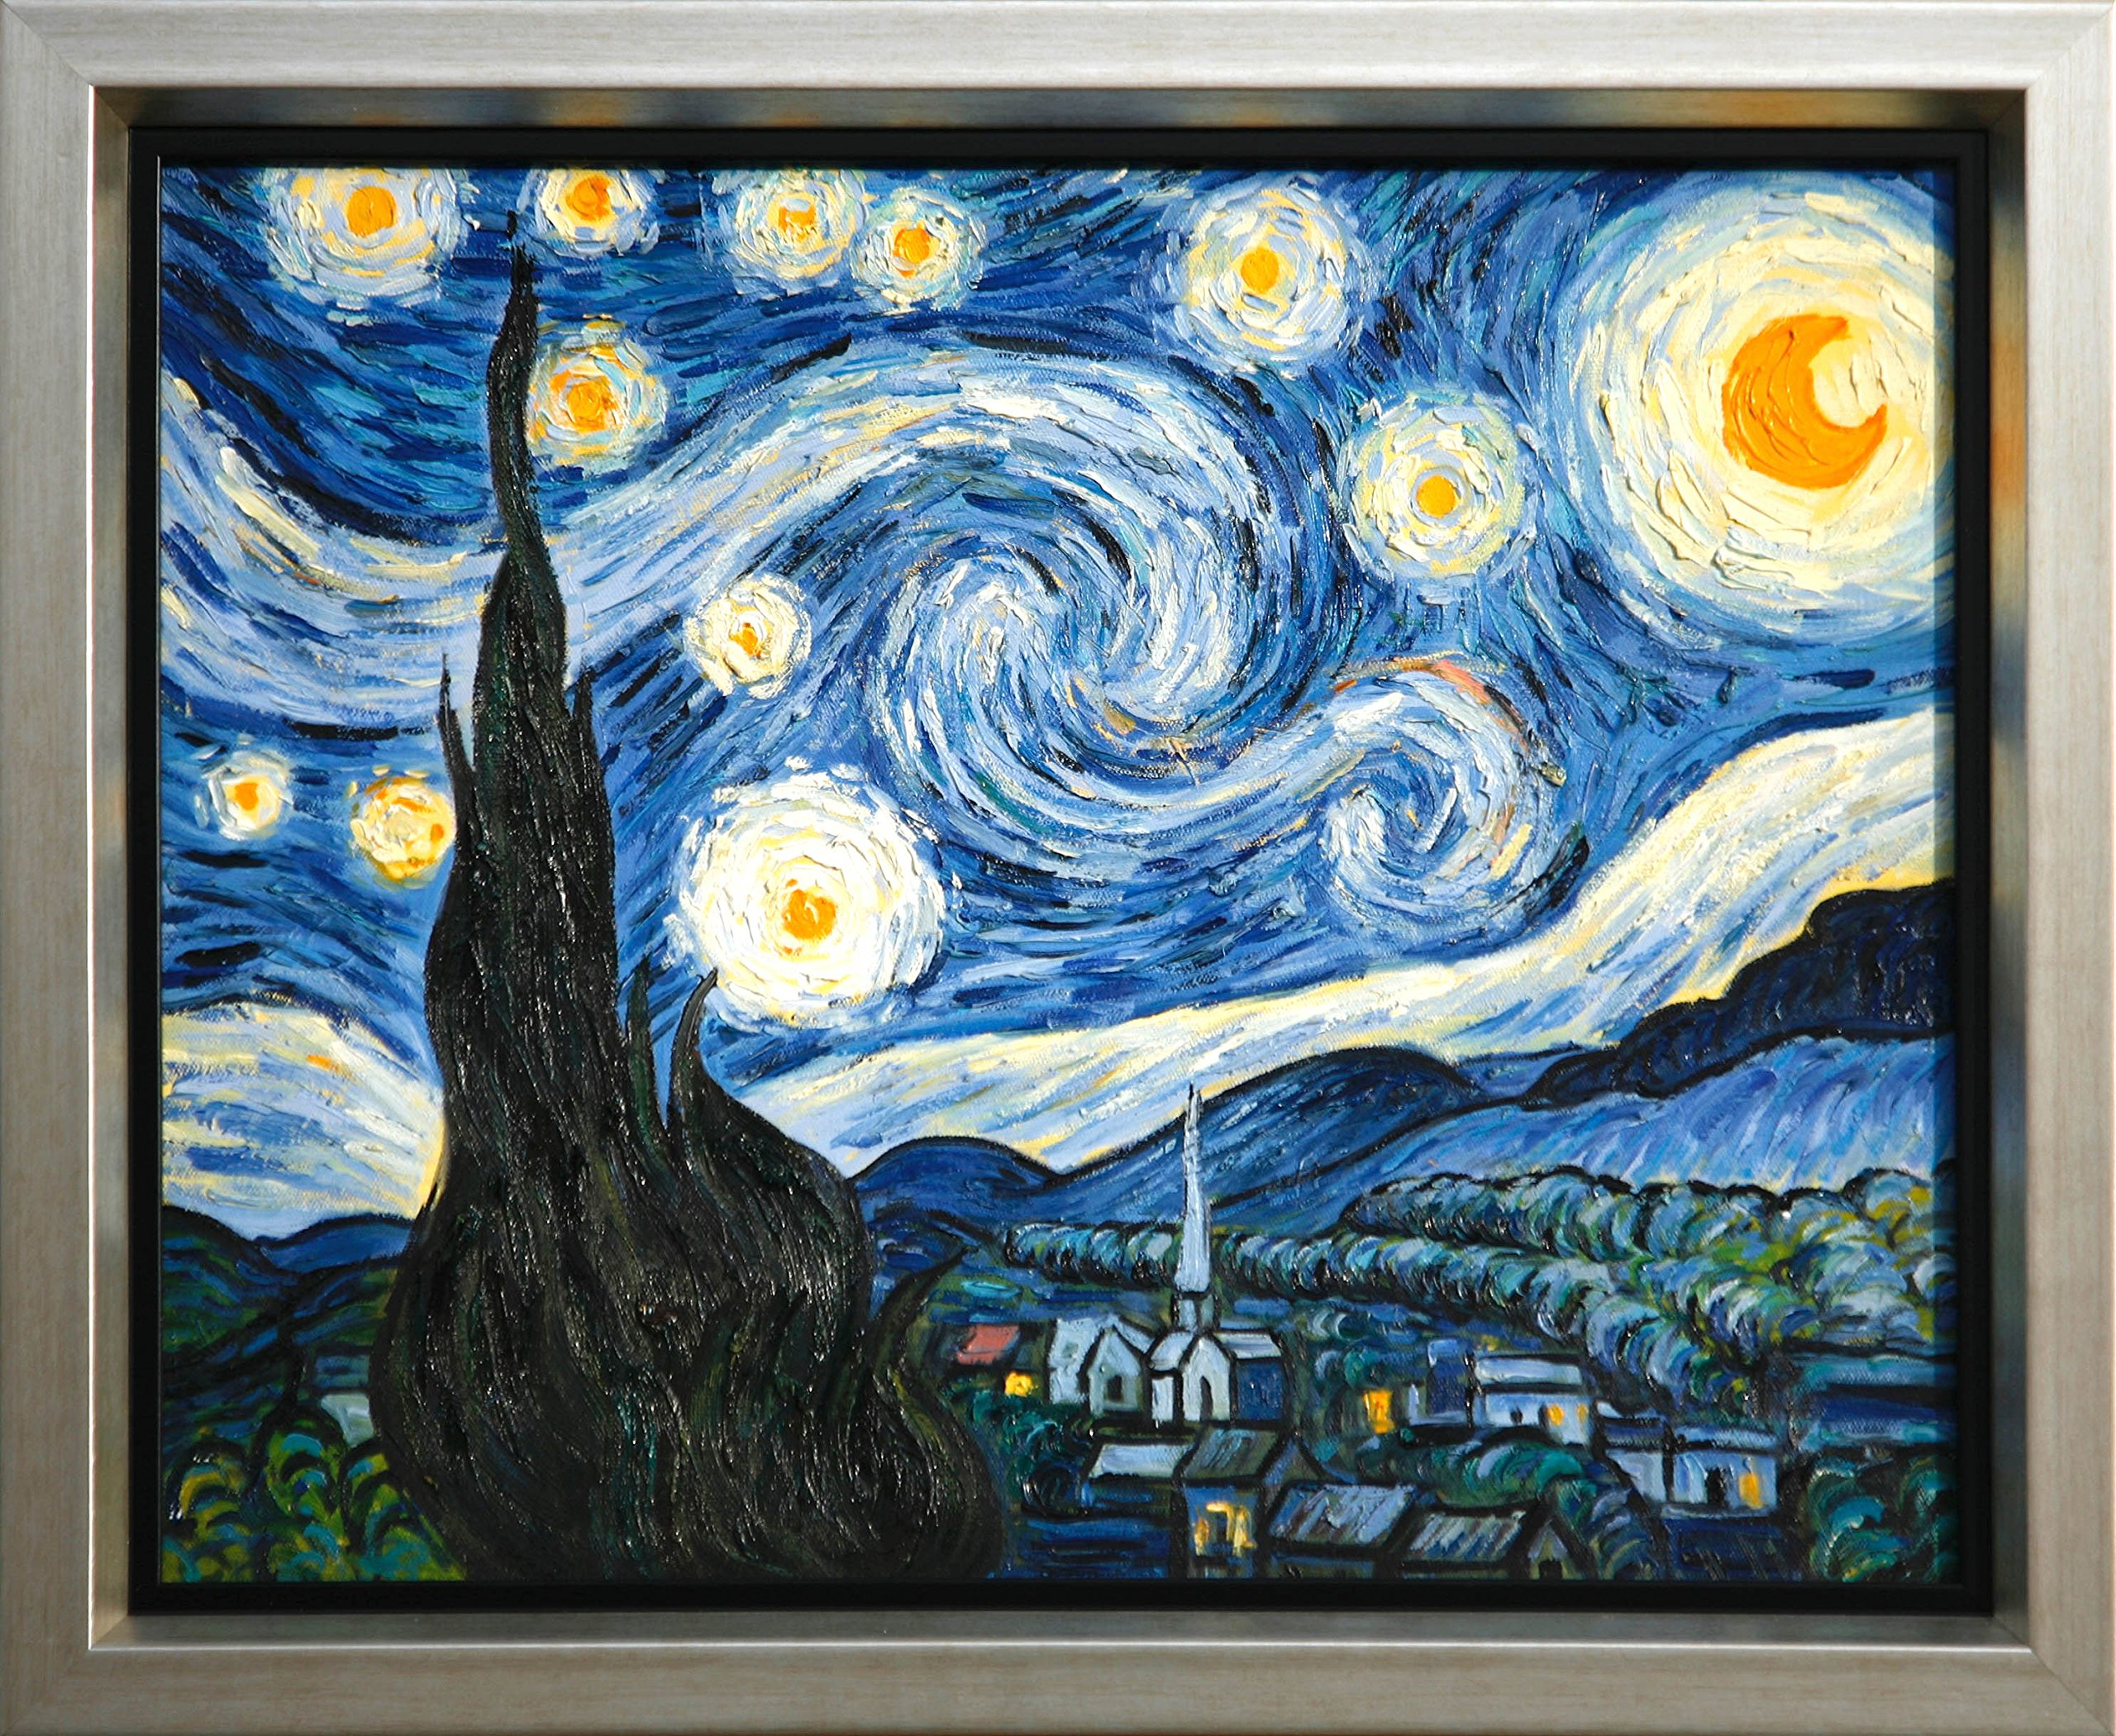 The Starry Night by Van Gogh 100% Hand Painted Oil on Canvas Museum Quality